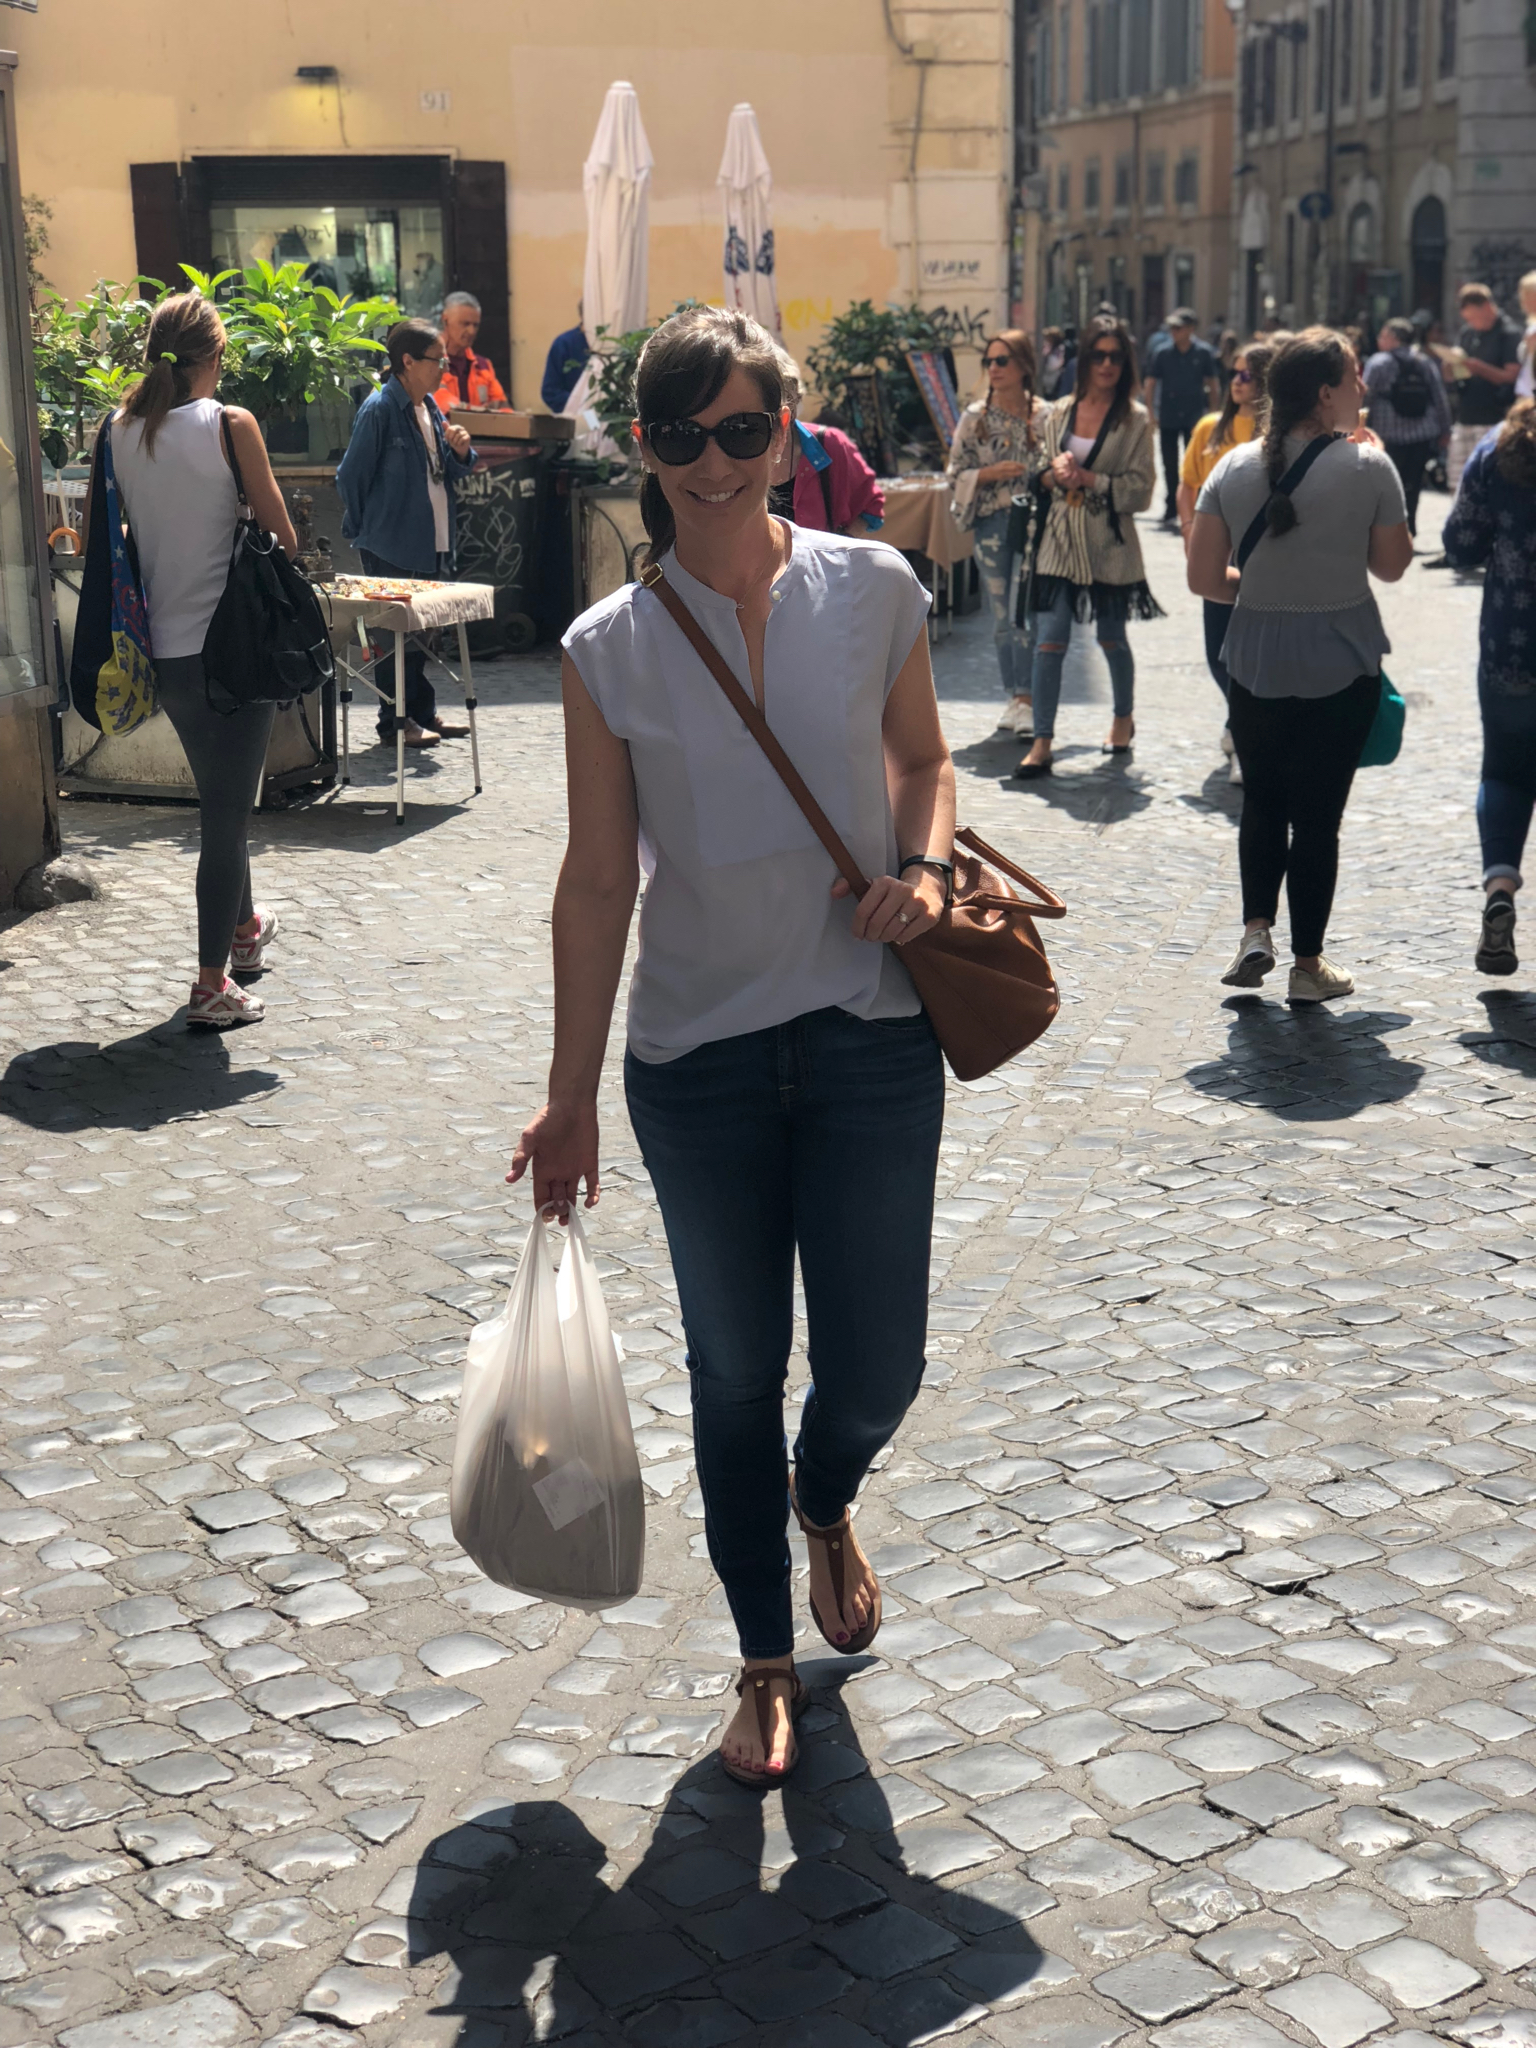 Heading home from the Campo de' Fiori market with fresh fruit!